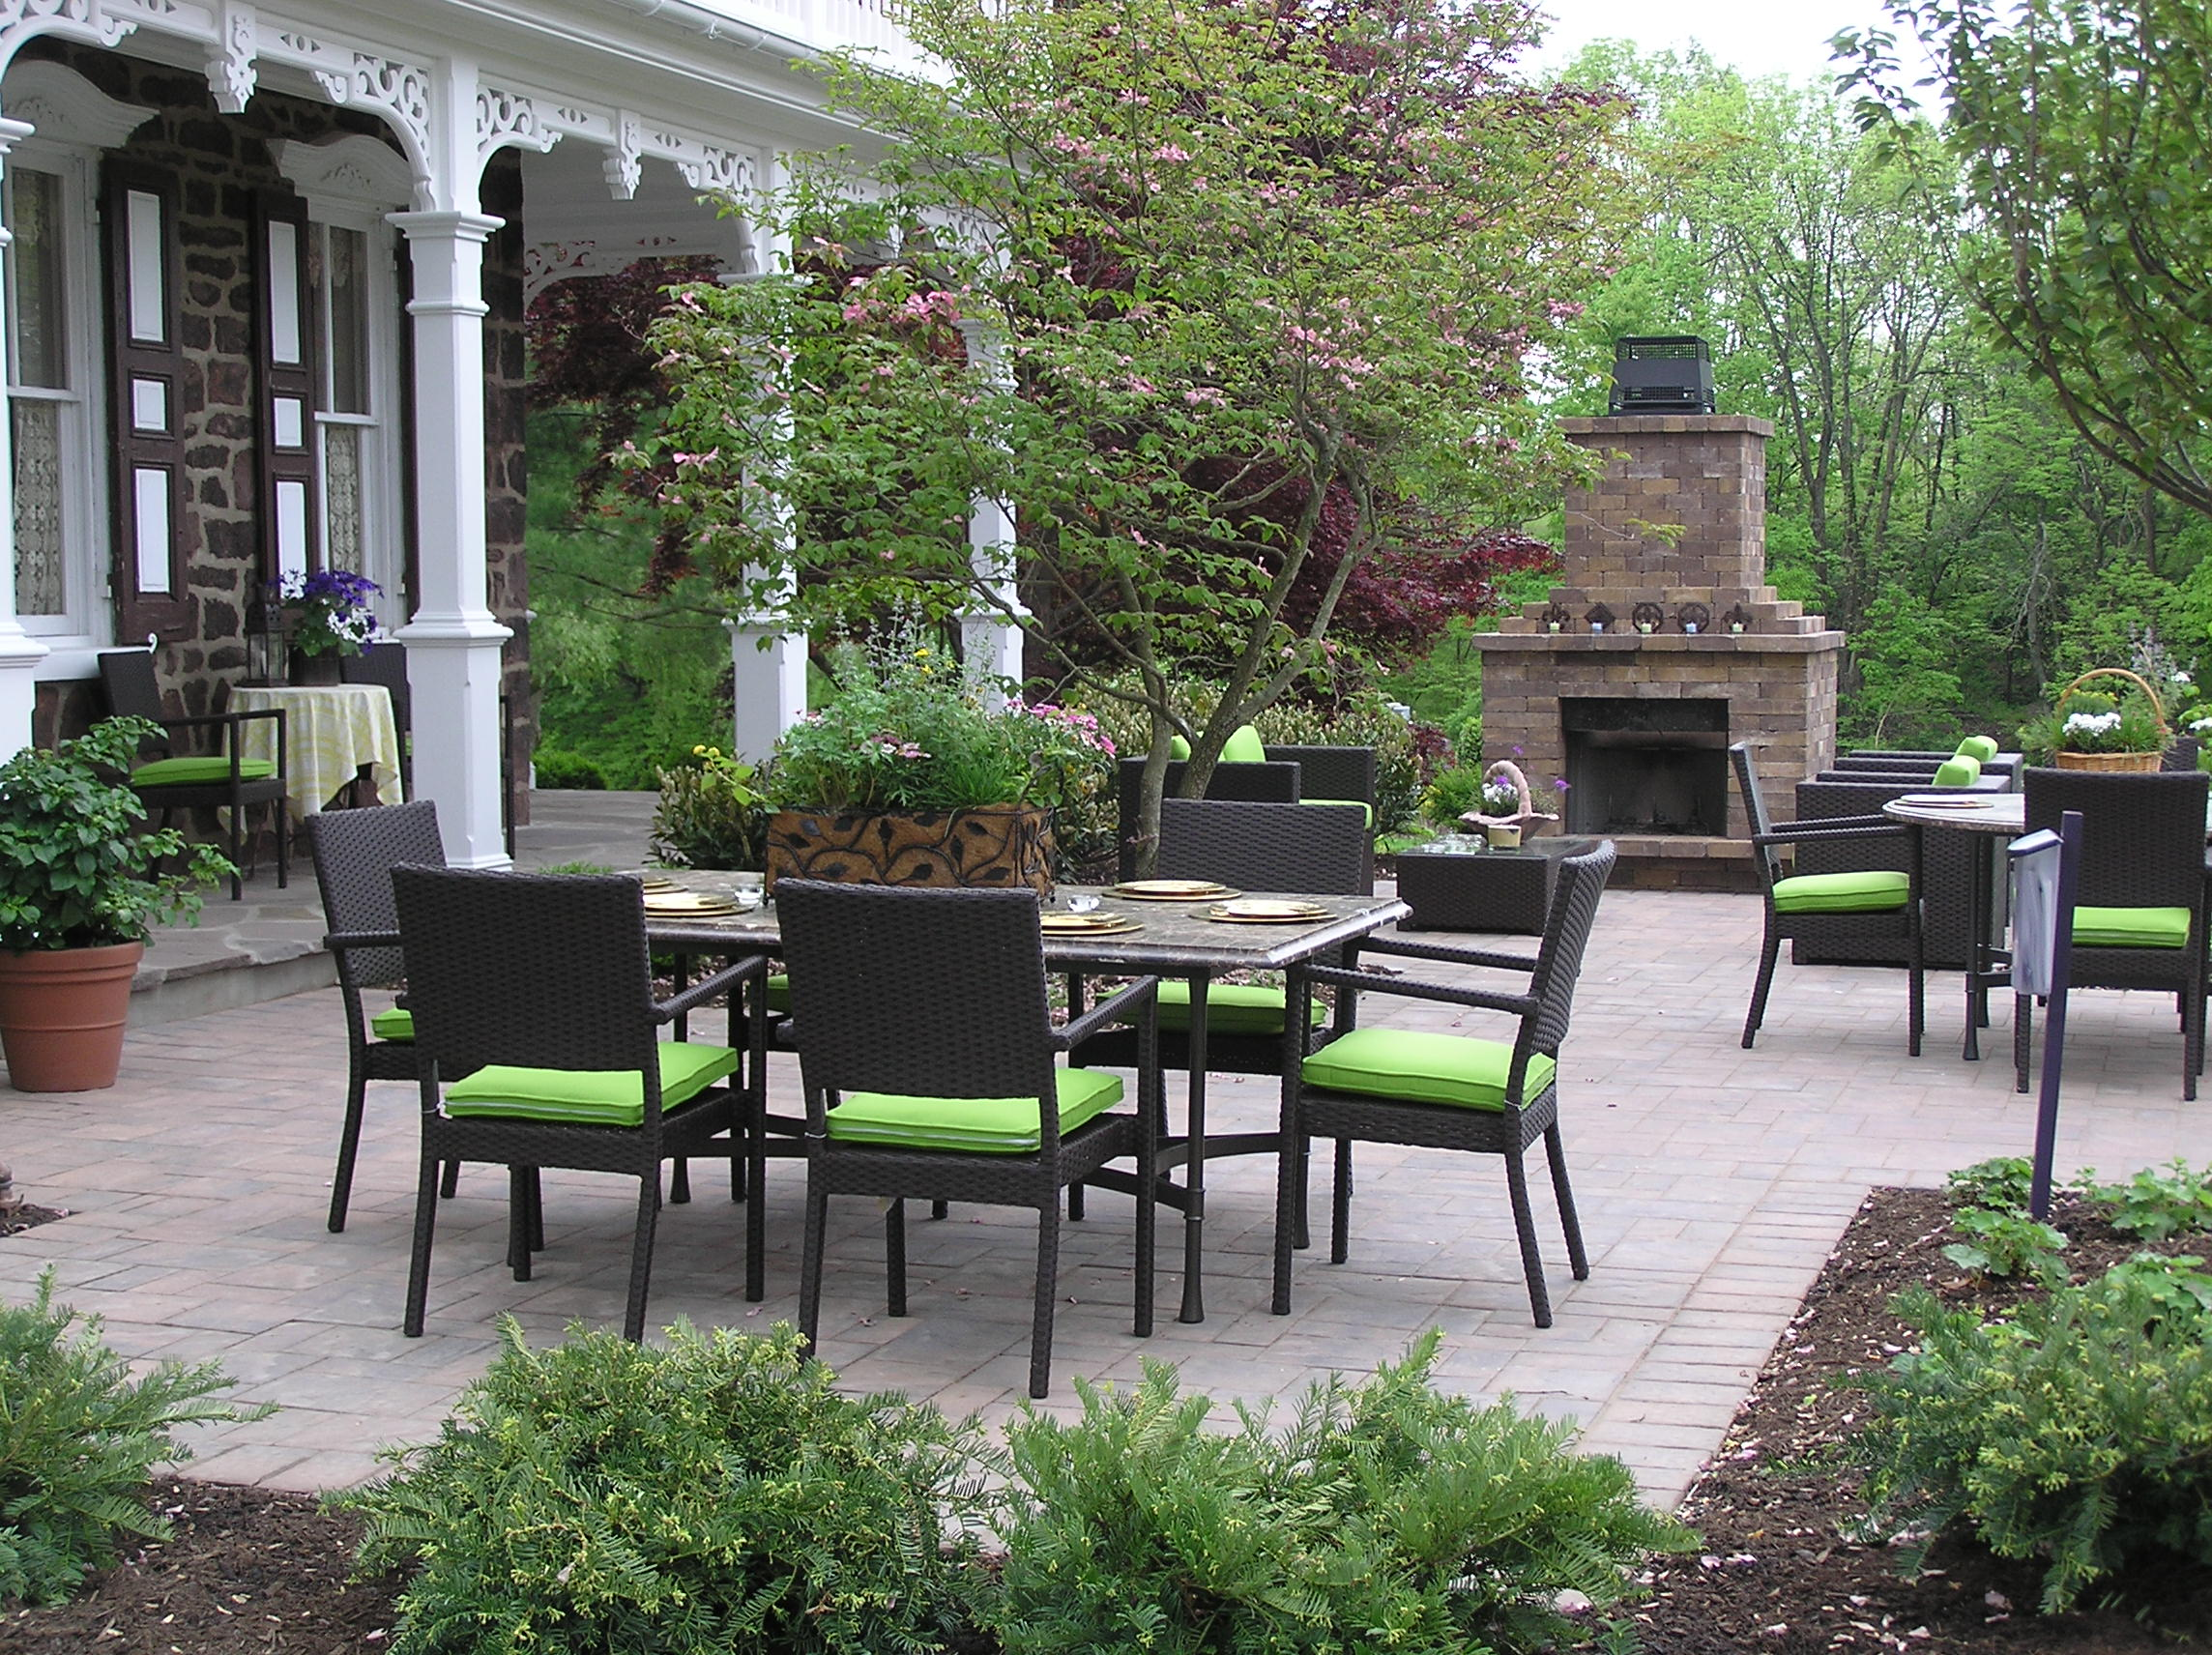 Patio Image 2.jpg